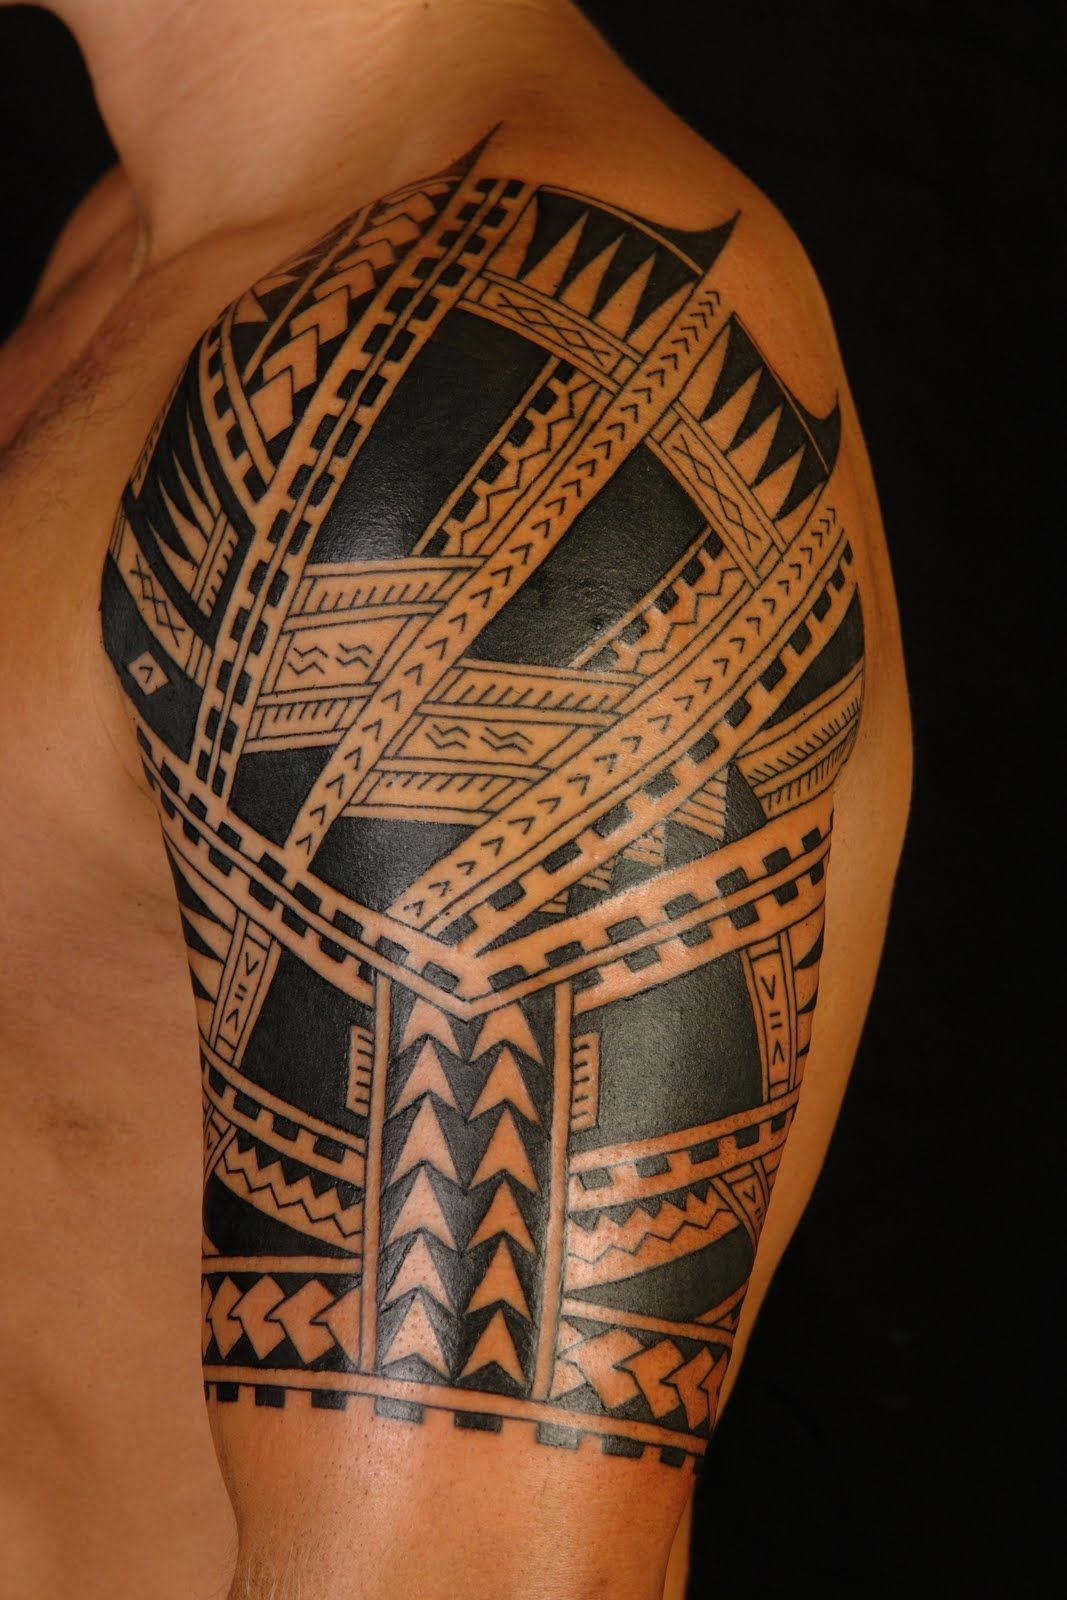 Polynesian tattoo on arm and chest - Samoan Never Copy From Their Skin Its Significant To Their Lives And Culture